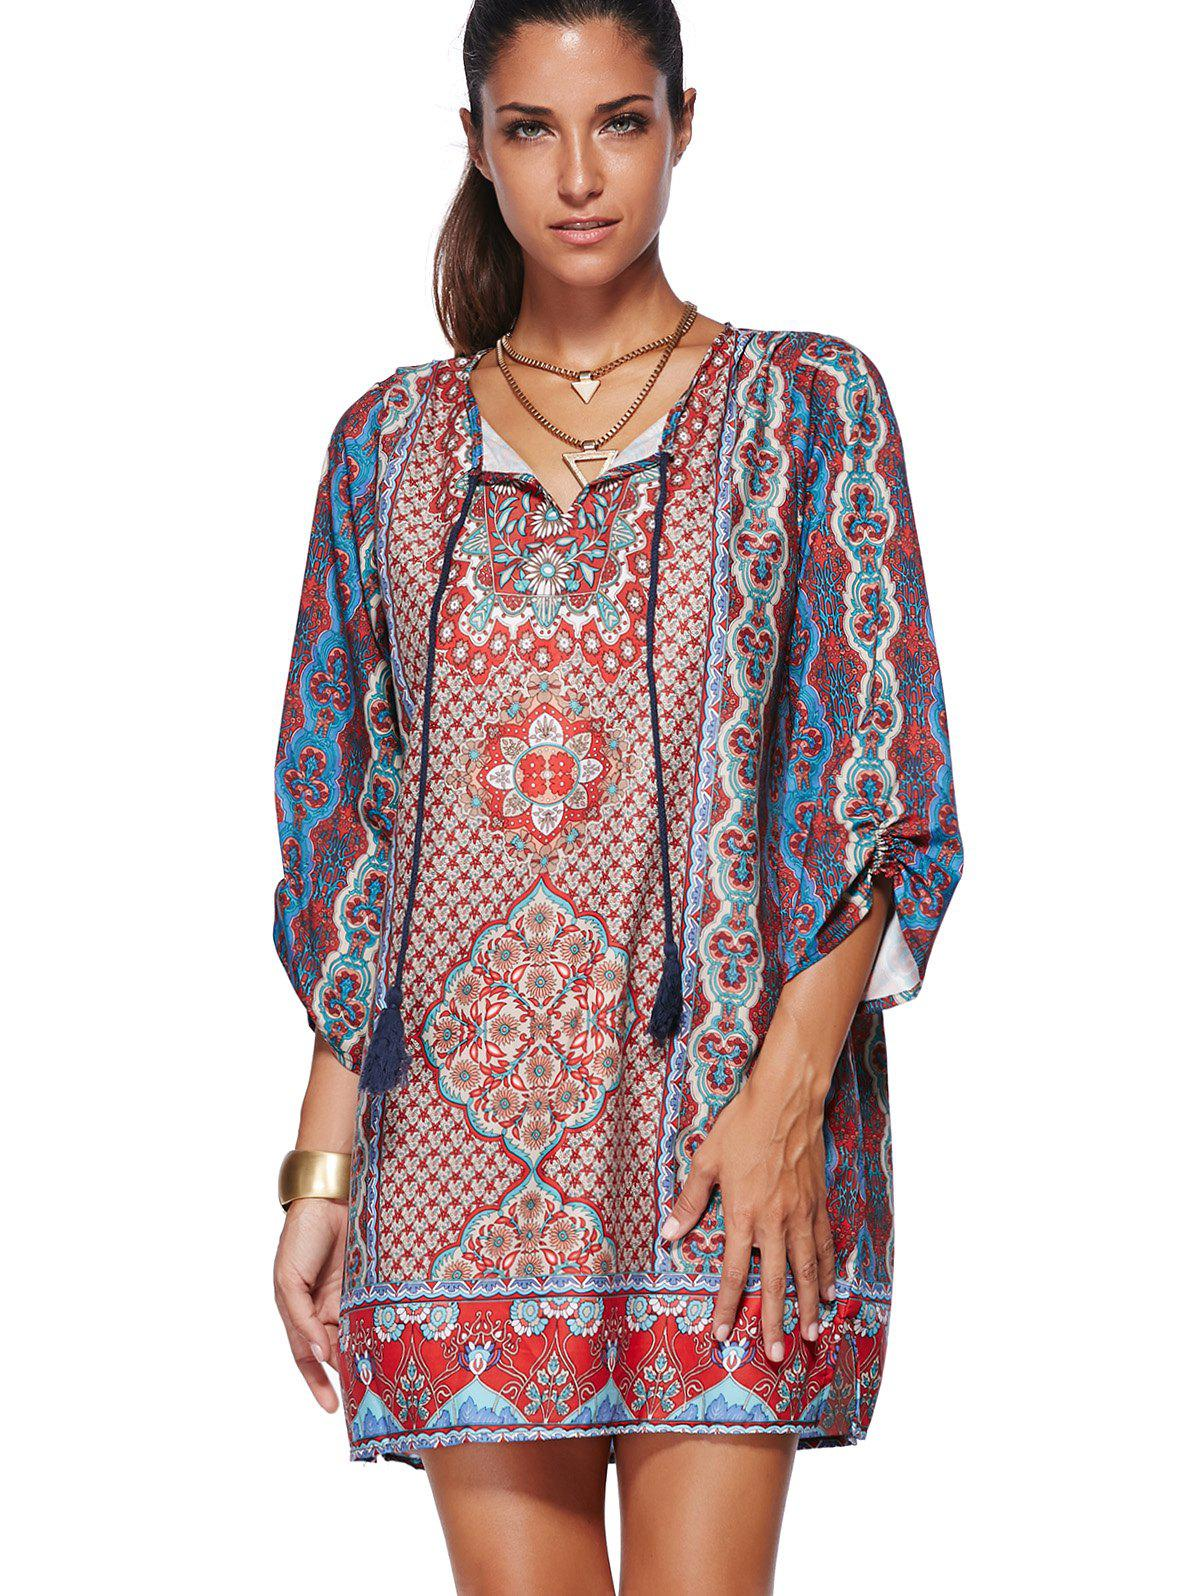 Women's Ethnic V-Neck 3/4 Sleeve Tribal Printed Dress - RED S